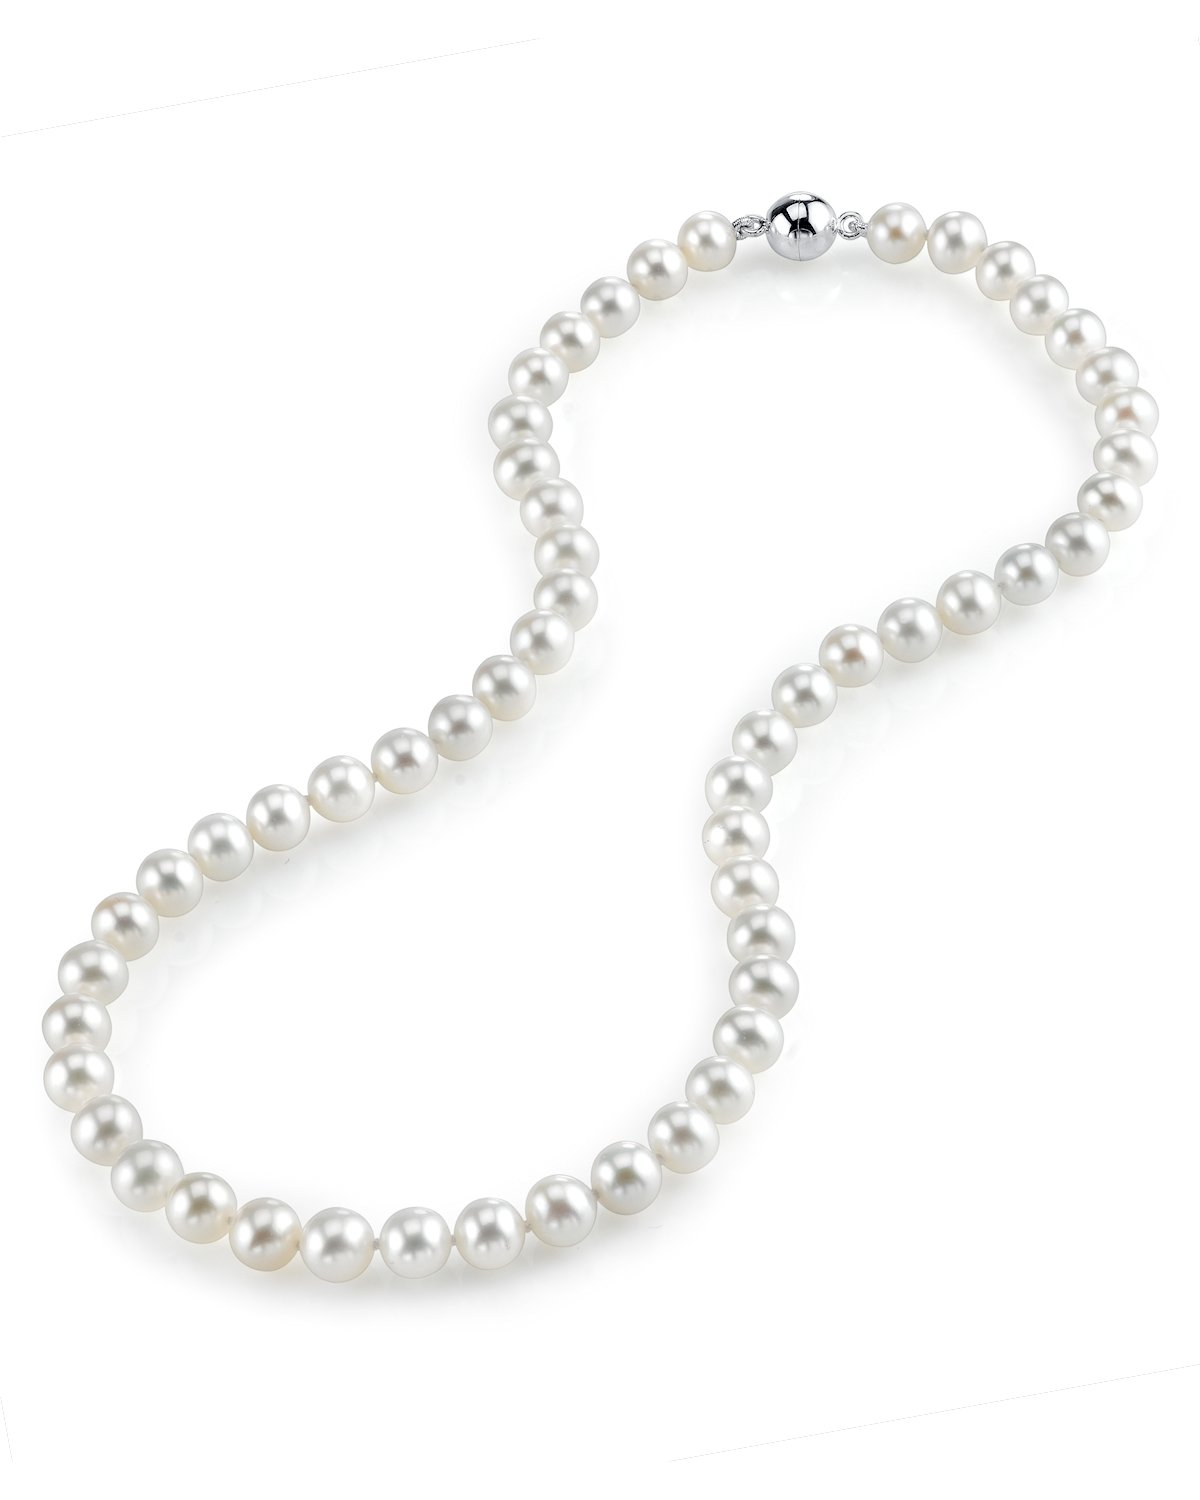 THE PEARL SOURCE 8-9mm AAA Quality Round White Freshwater Cultured Pearl Necklace for Women with Magnetic Clasp in 24'' Matinee Length by The Pearl Source